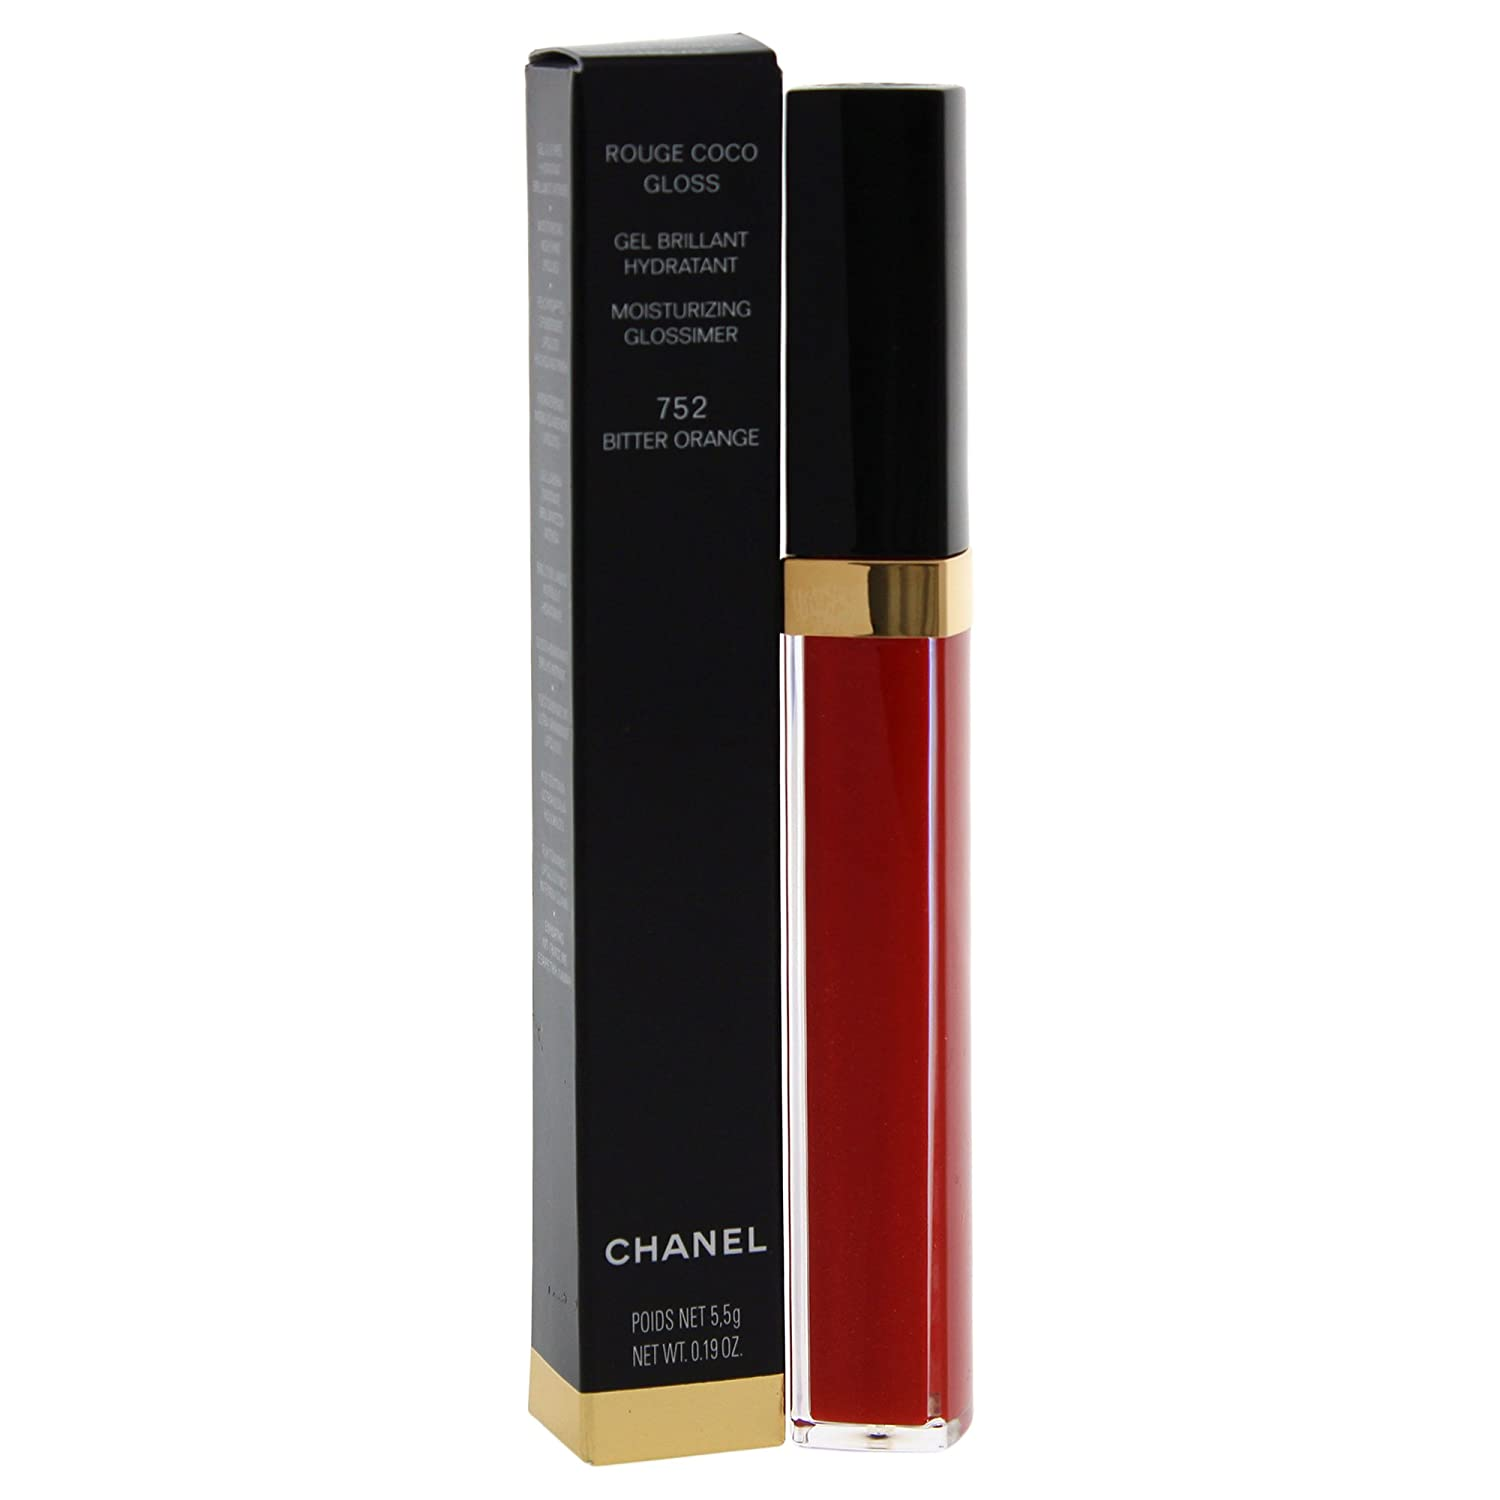 Chanel Rouge Coco Gloss Moisturizing Glossimer